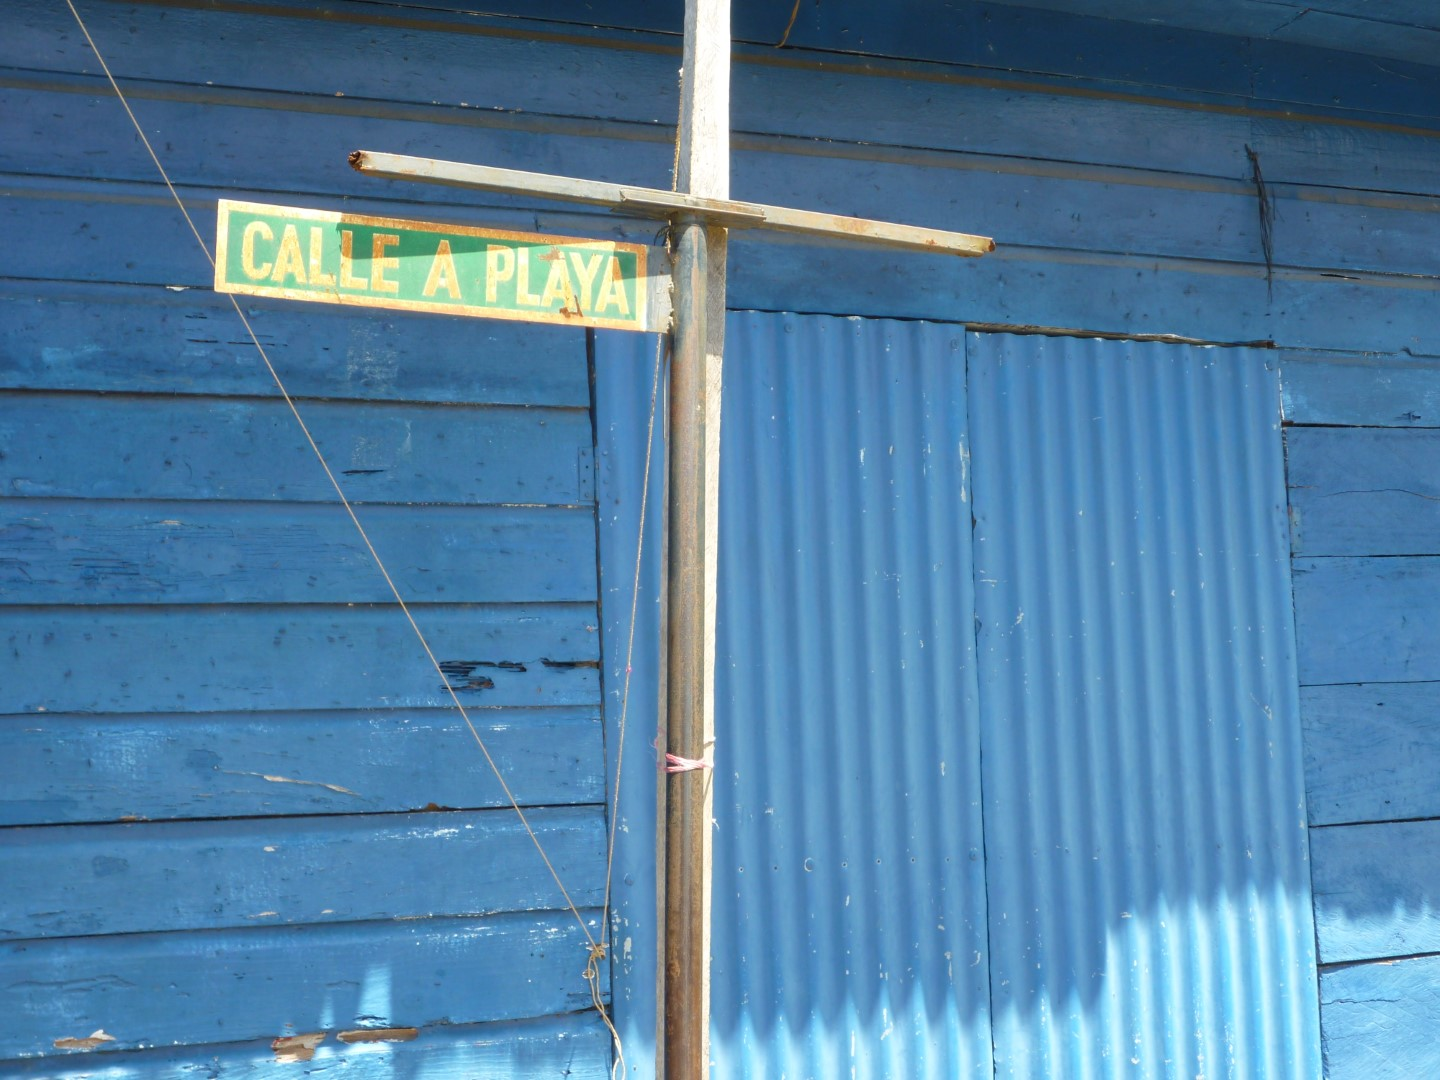 Street sign in Livingston, Guatemala